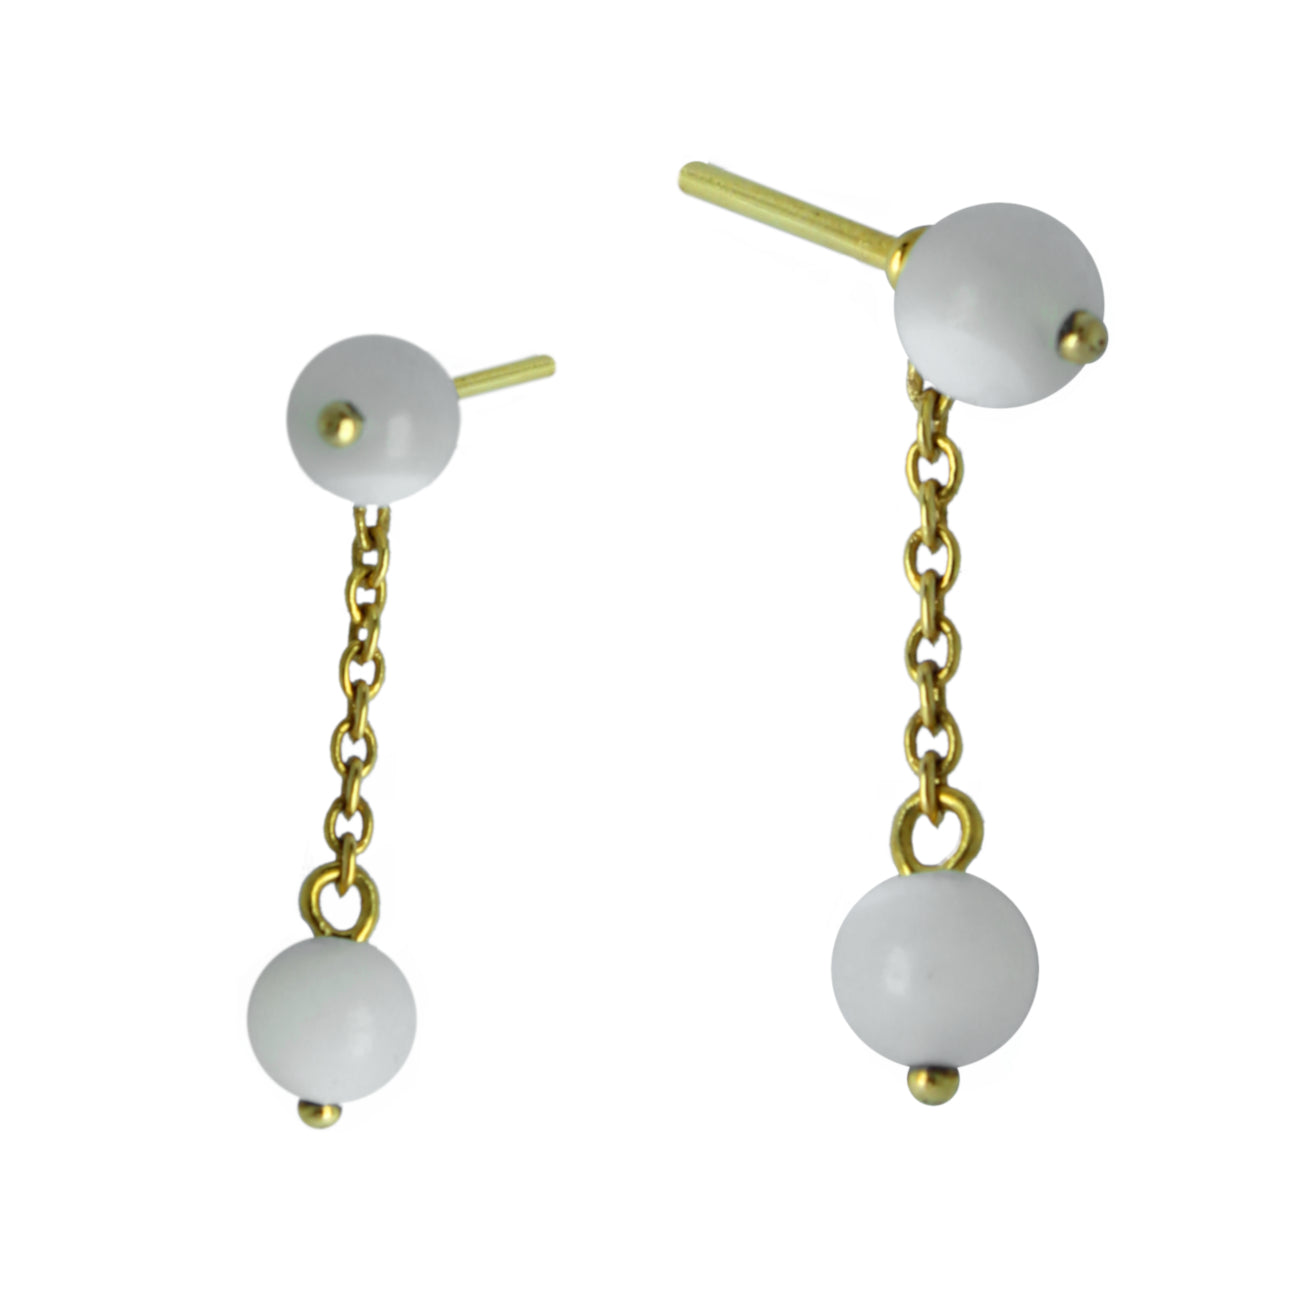 Dangling Beads Earrings (Includes Options)